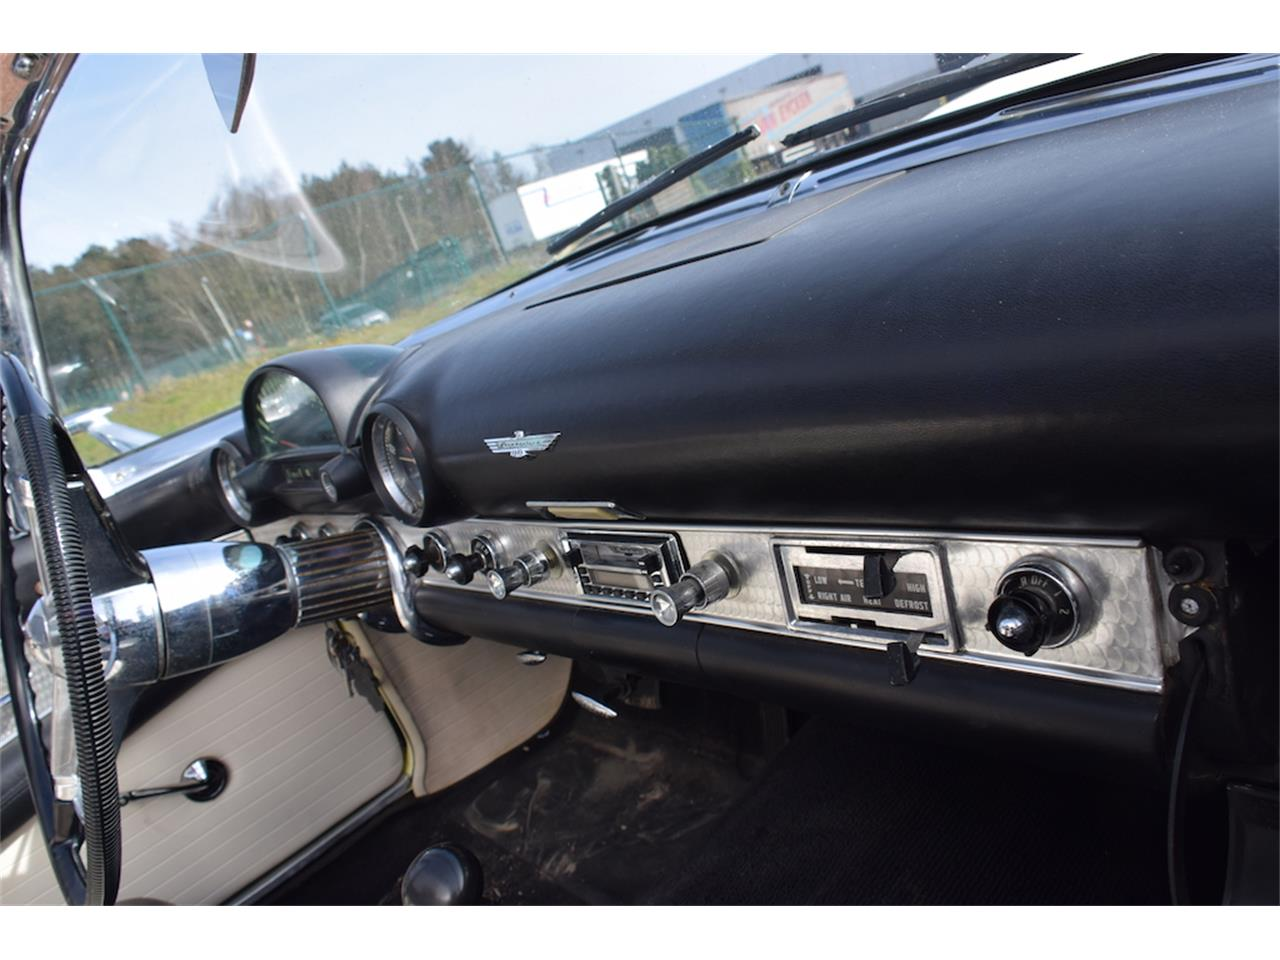 Large Picture of 1955 Ford Thunderbird located in Westmalle europe - $48,000.00 Offered by a Private Seller - HHJ2